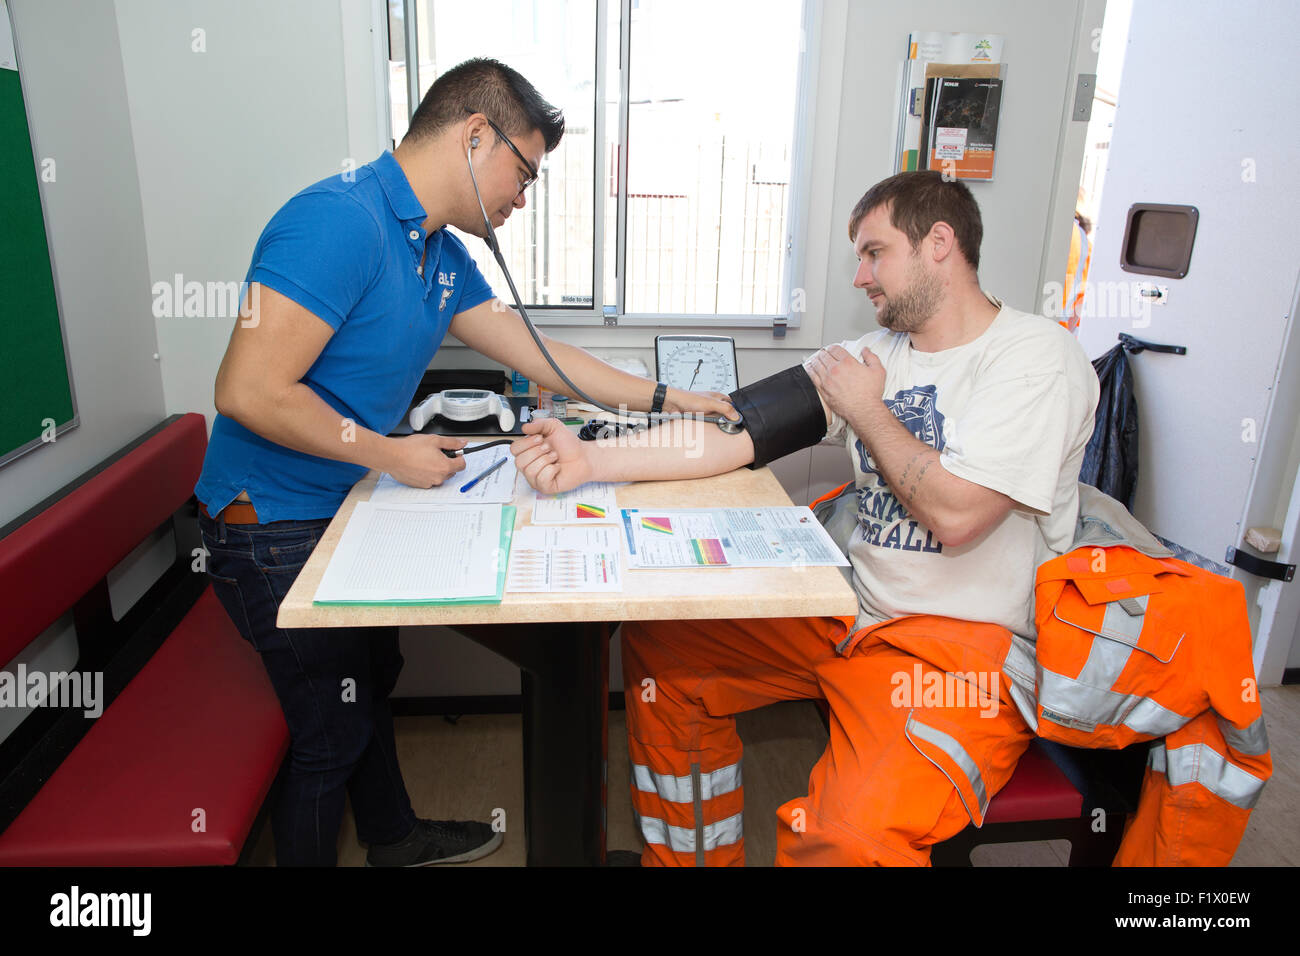 Construction workers taking blood pressure test and general health check on site, England, UK - Stock Image